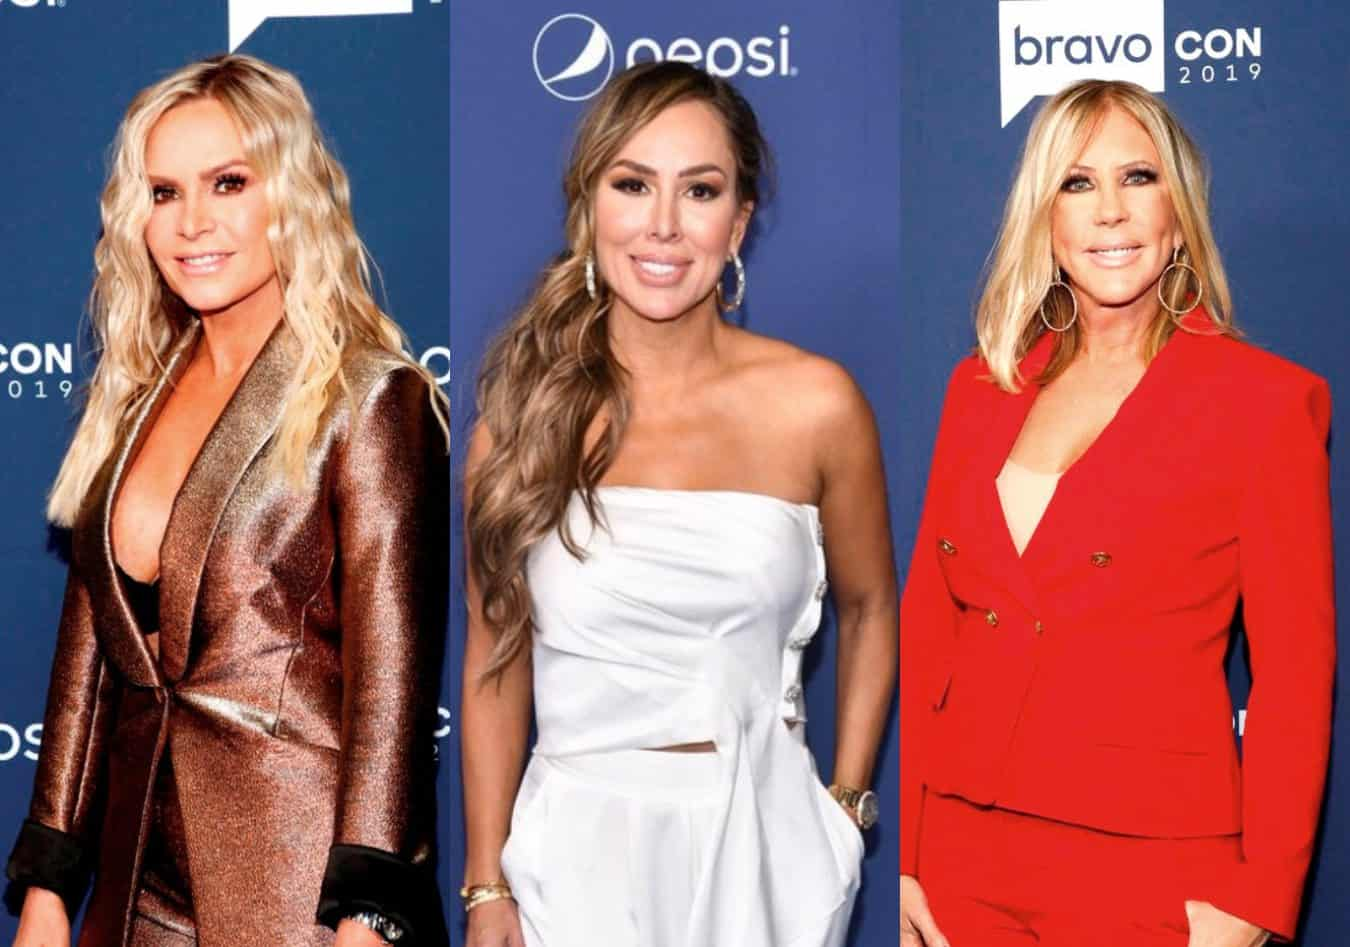 RHOC's Tamra Judge Shares What Part of Her Life Bravo Wouldn't Film as Kelly Dodd Reveals If She'd Prefer Tamra or Vicki Gunvalson Return to the Show for Season 15